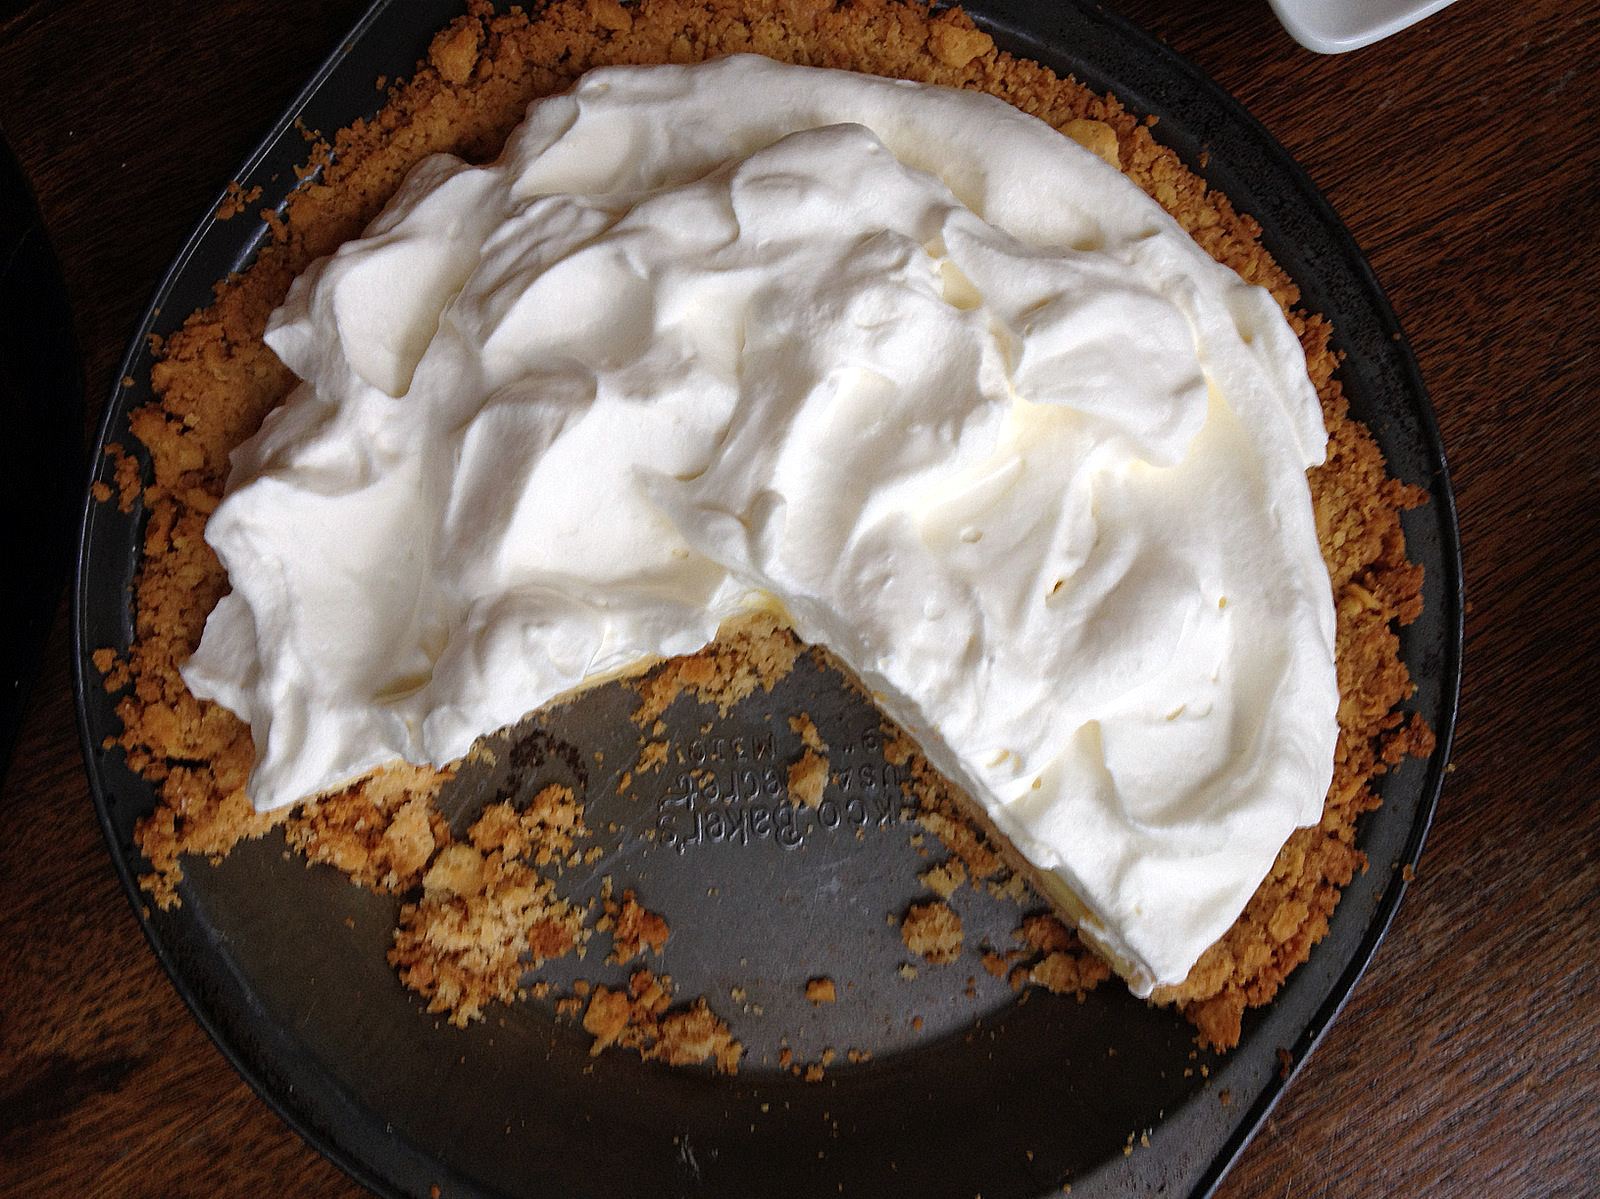 A North Carolina Pie That Elicits An 'Oh My God' Response